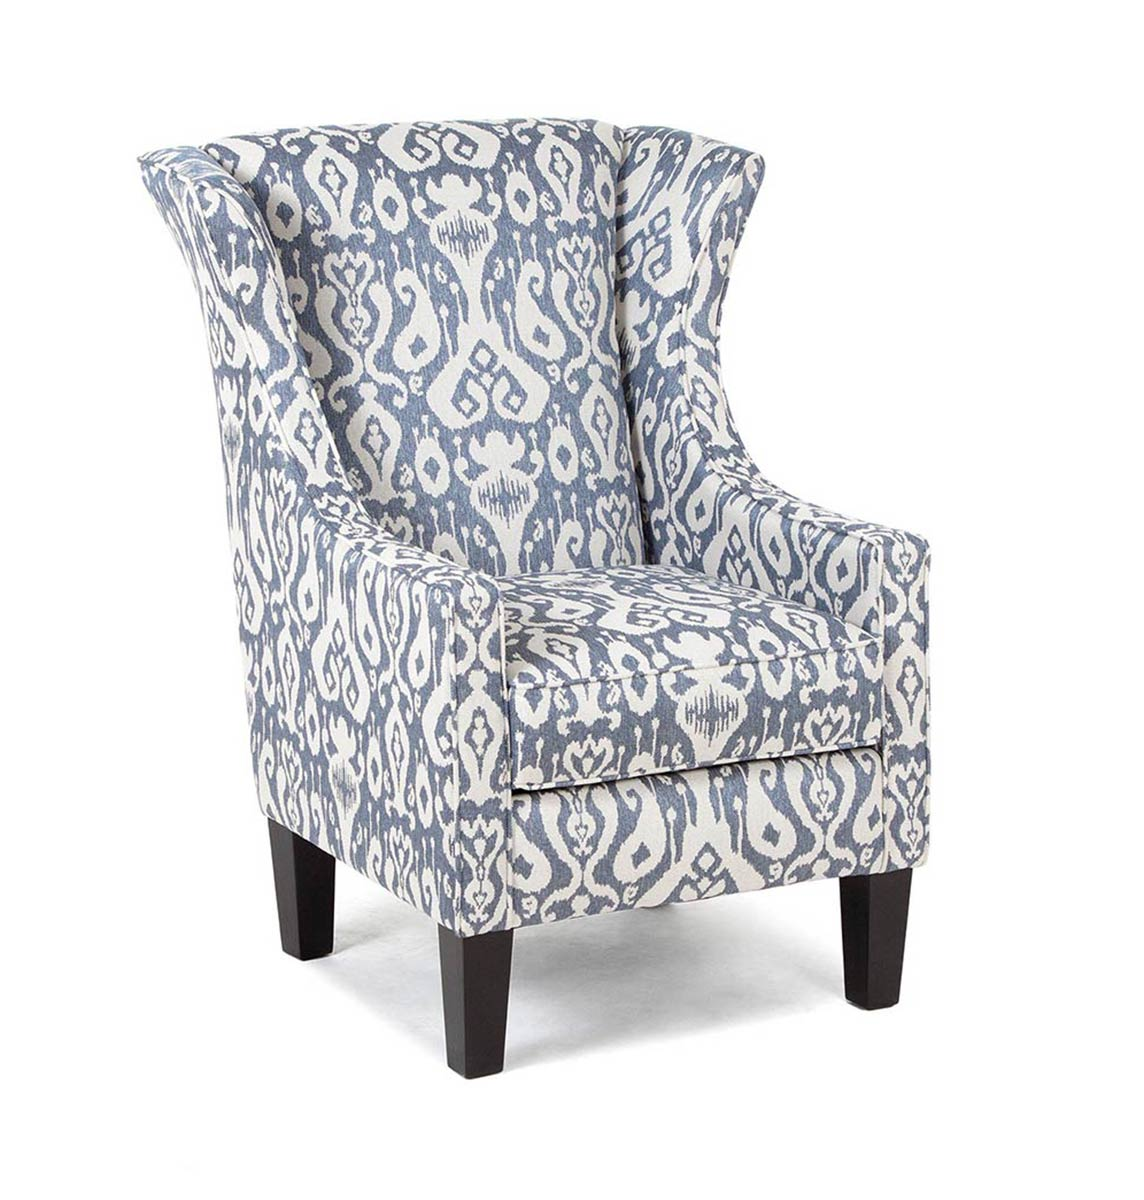 Chelsea Home Jubilee Accent Chair - Denim